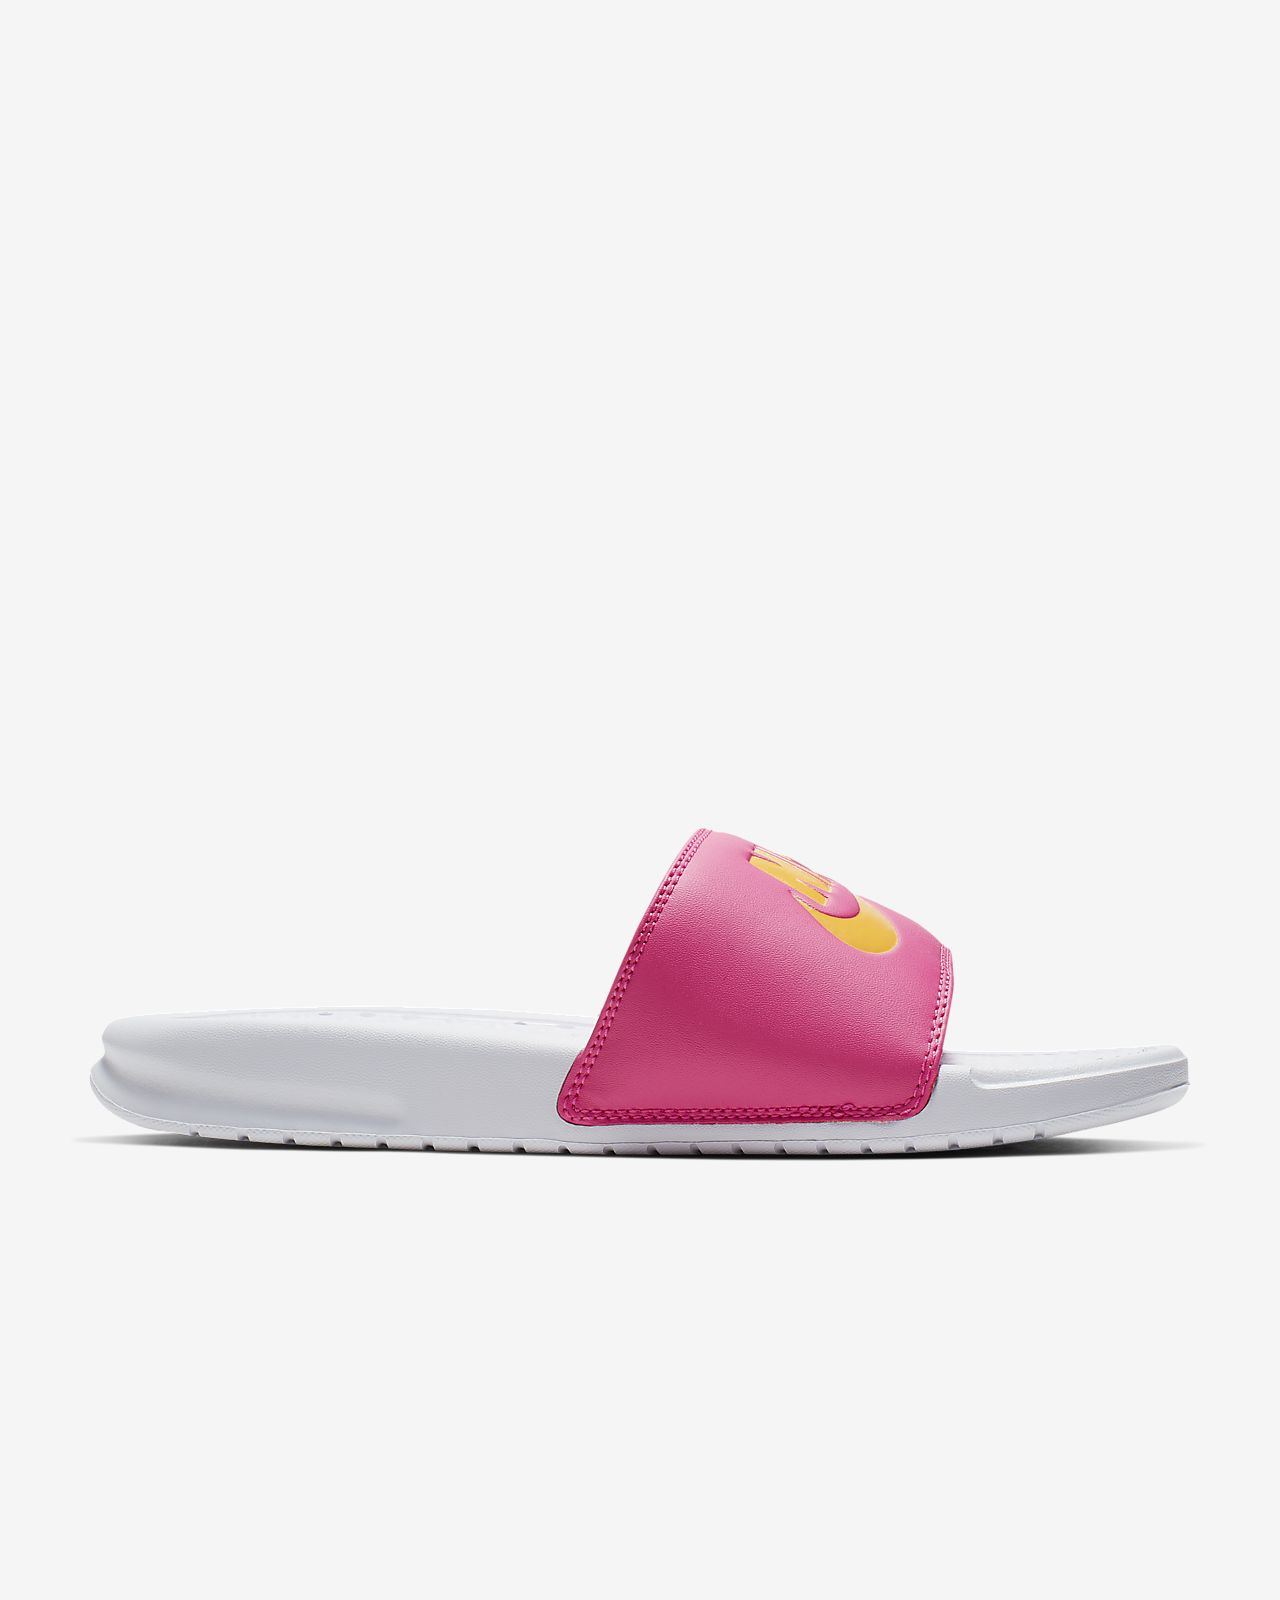 huge discount 611a6 2e66b Low Resolution Nike Benassi Women s Slide Nike Benassi Women s Slide